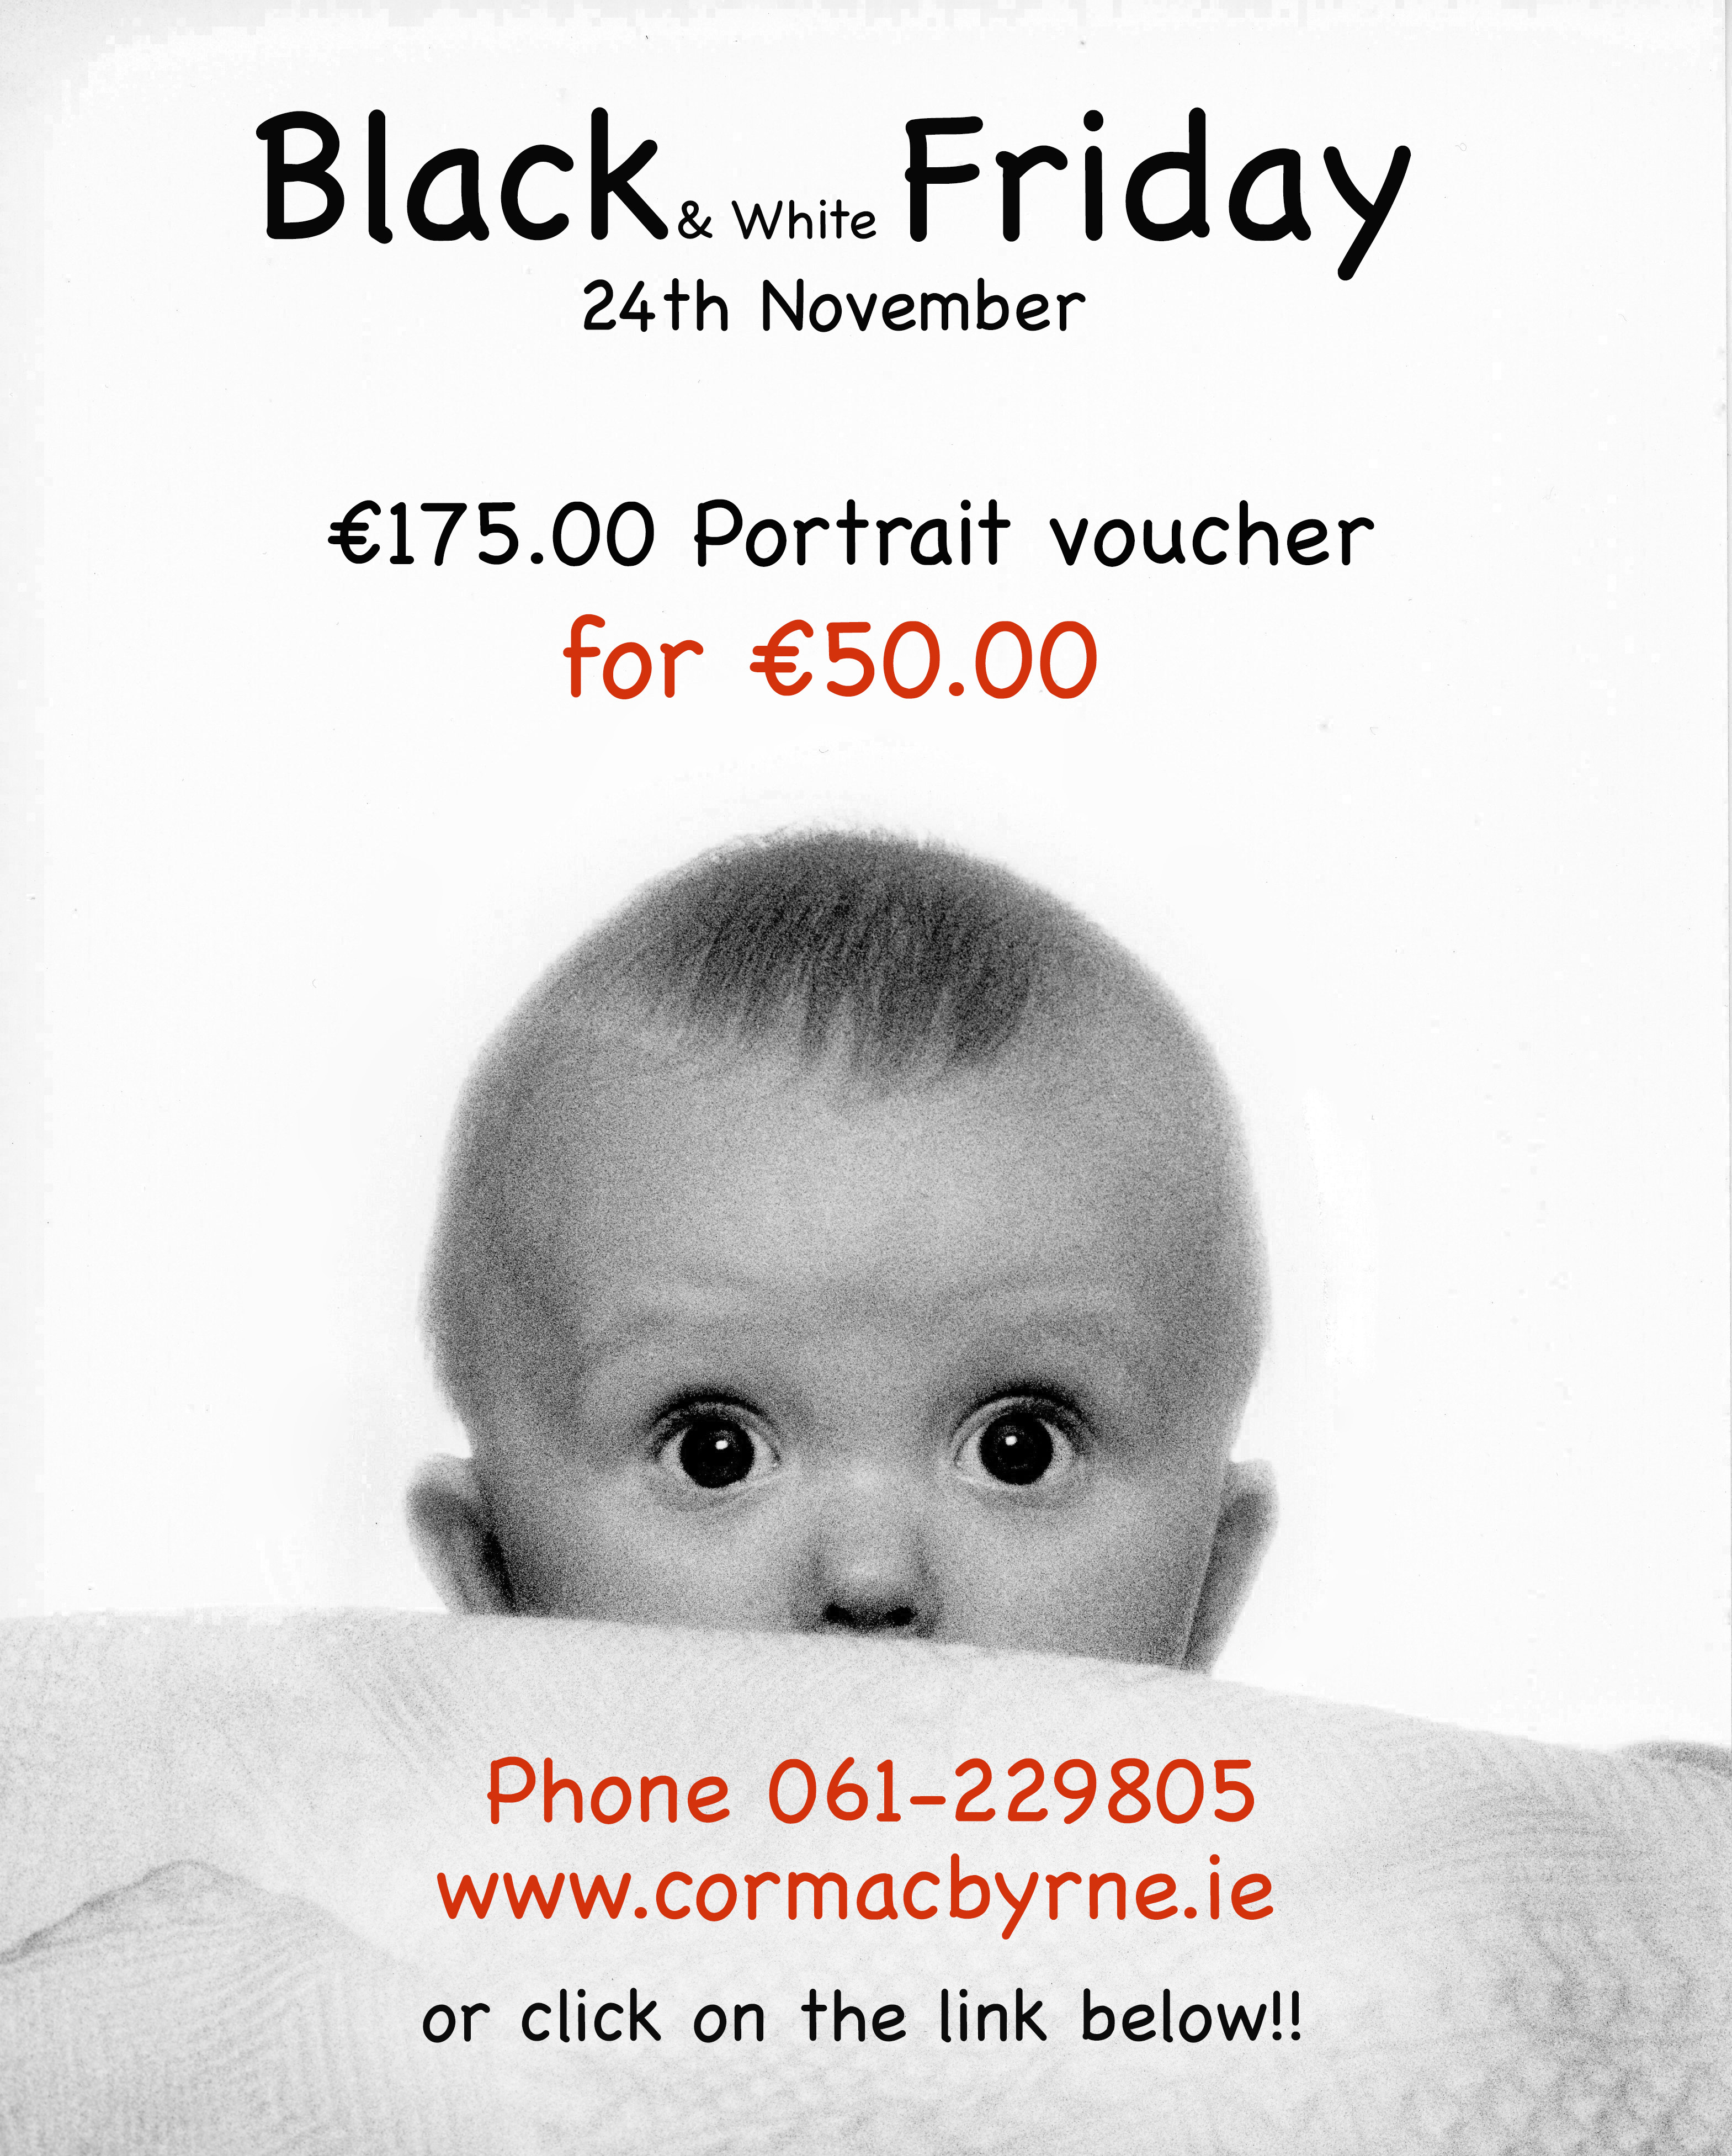 Black & White Friday gift voucher offer